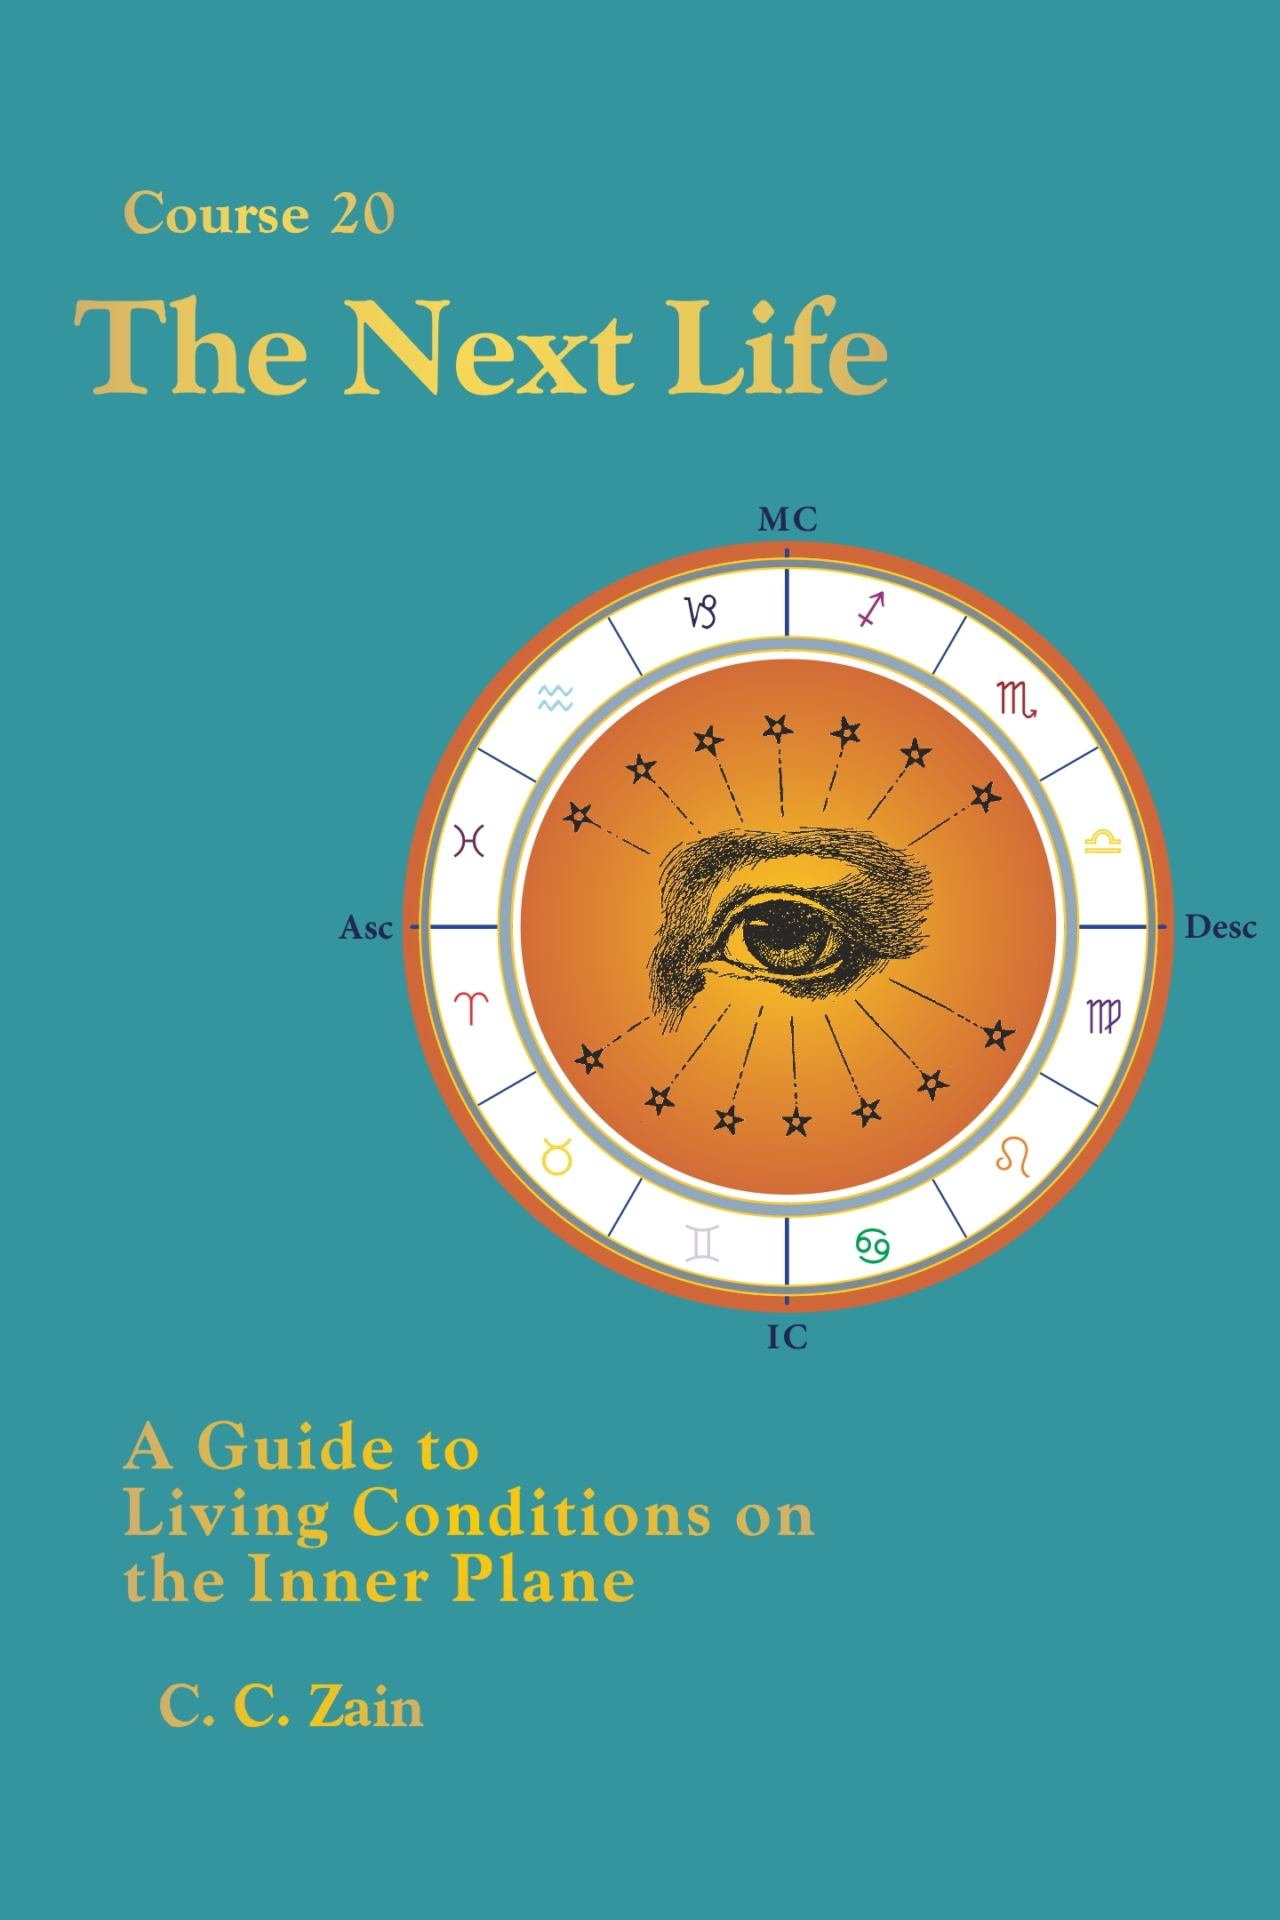 https://study.academyofhermeticarts.org/wp-content/uploads/2020/04/20_The_Next_Life_eBook_Cover-1280x1920.jpg